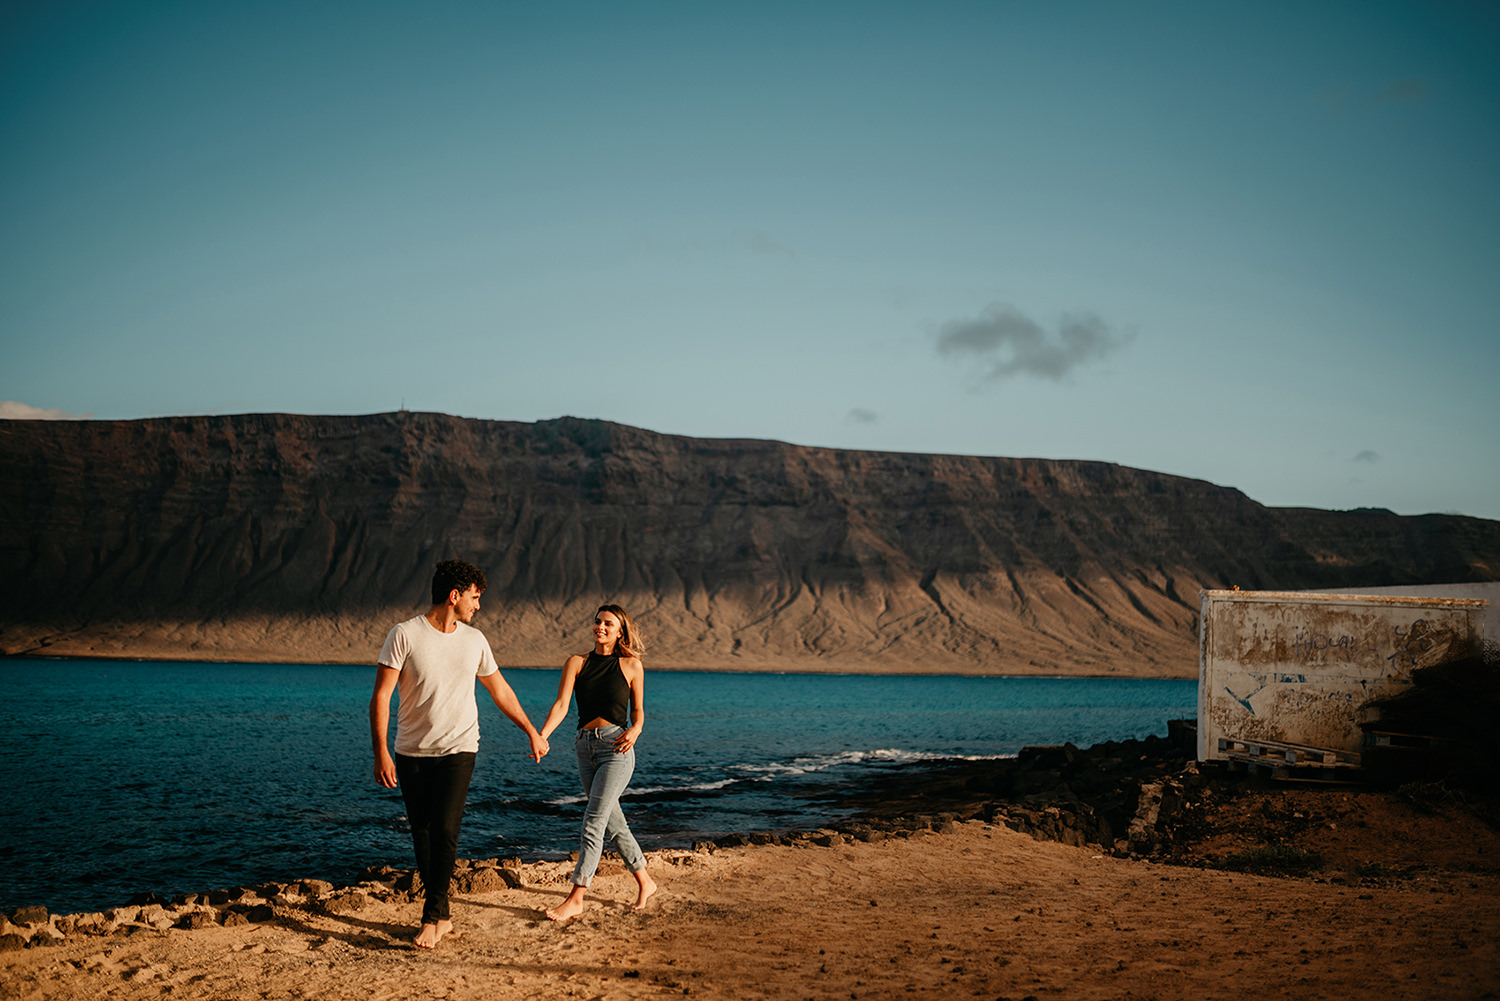 Elopement in La Graciosa, Caleta del Sebo with Lanzarote cliffs in the background